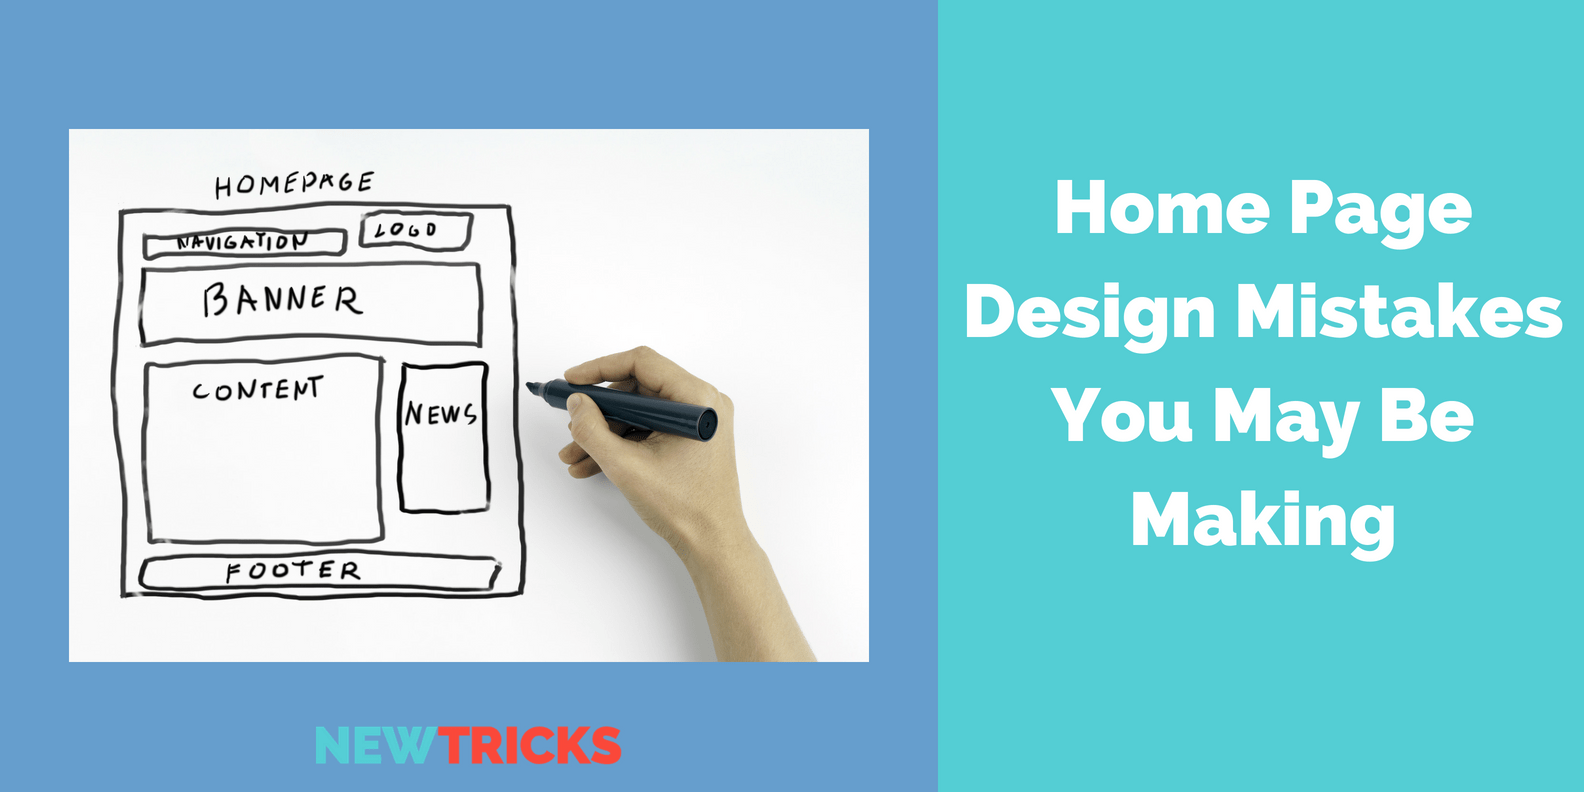 Home Page Design Mistakes